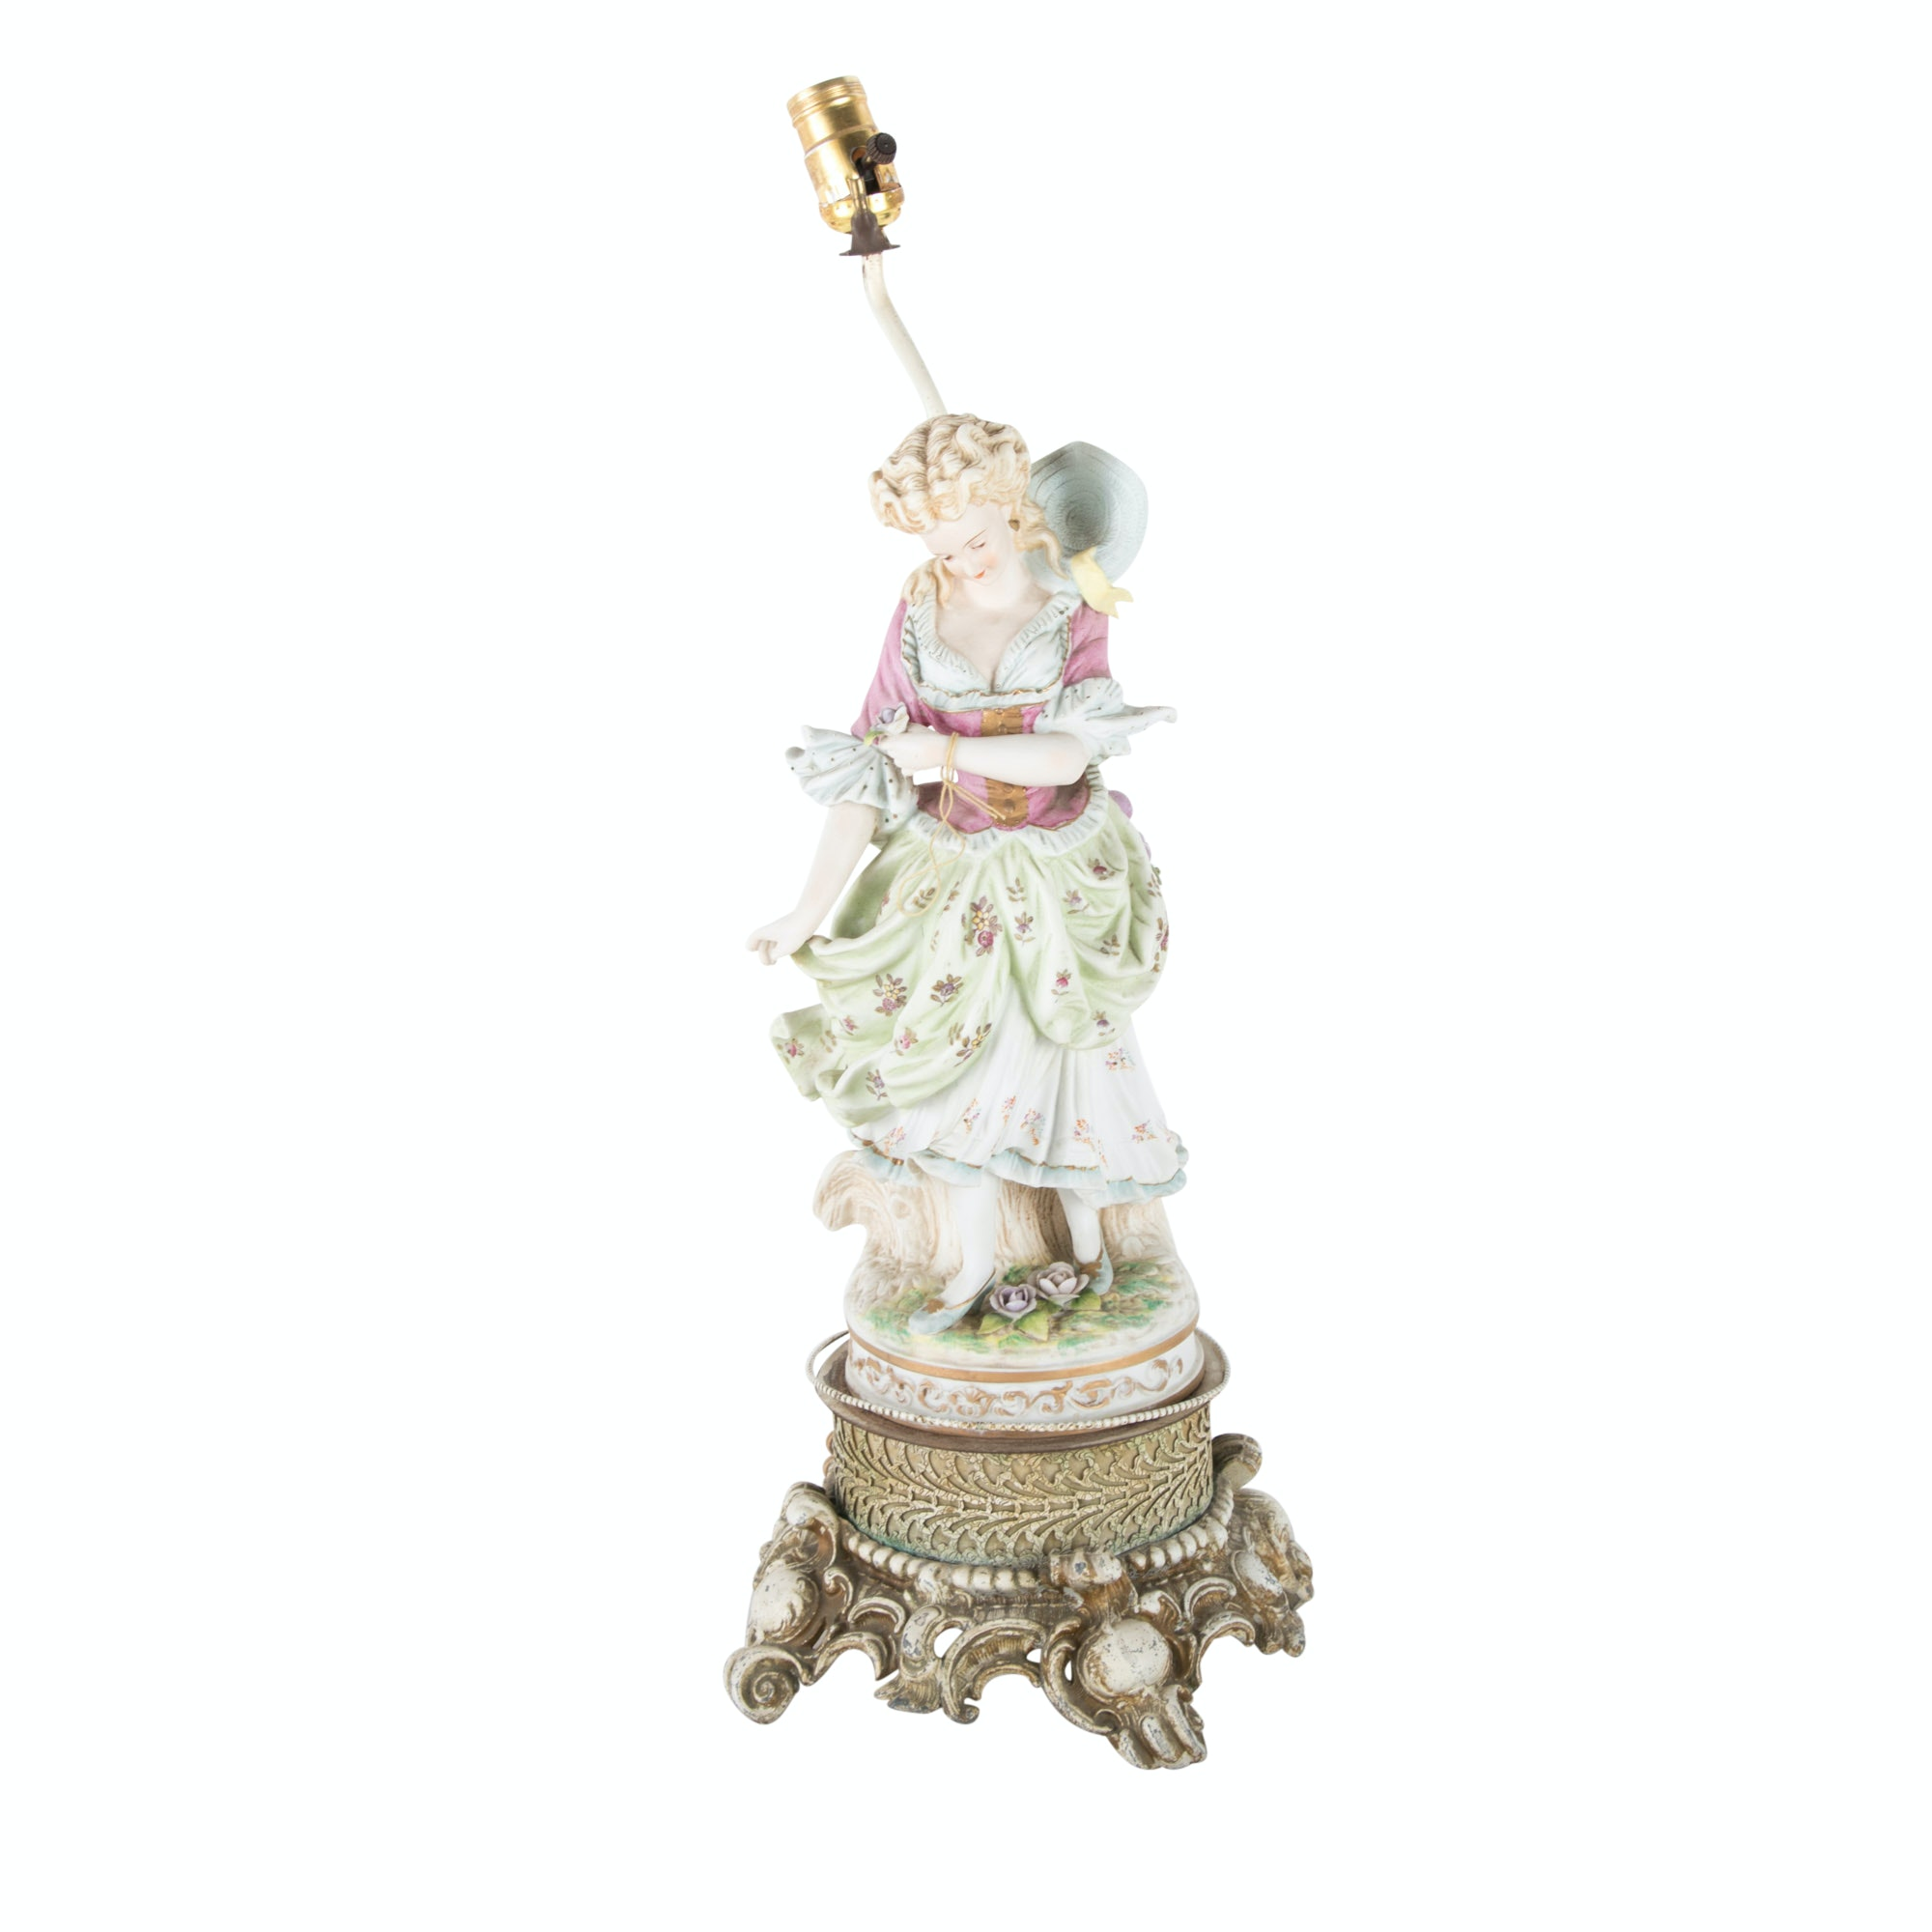 German Bisque Porcelain Figure Mounted as a Lamp, 20th Century